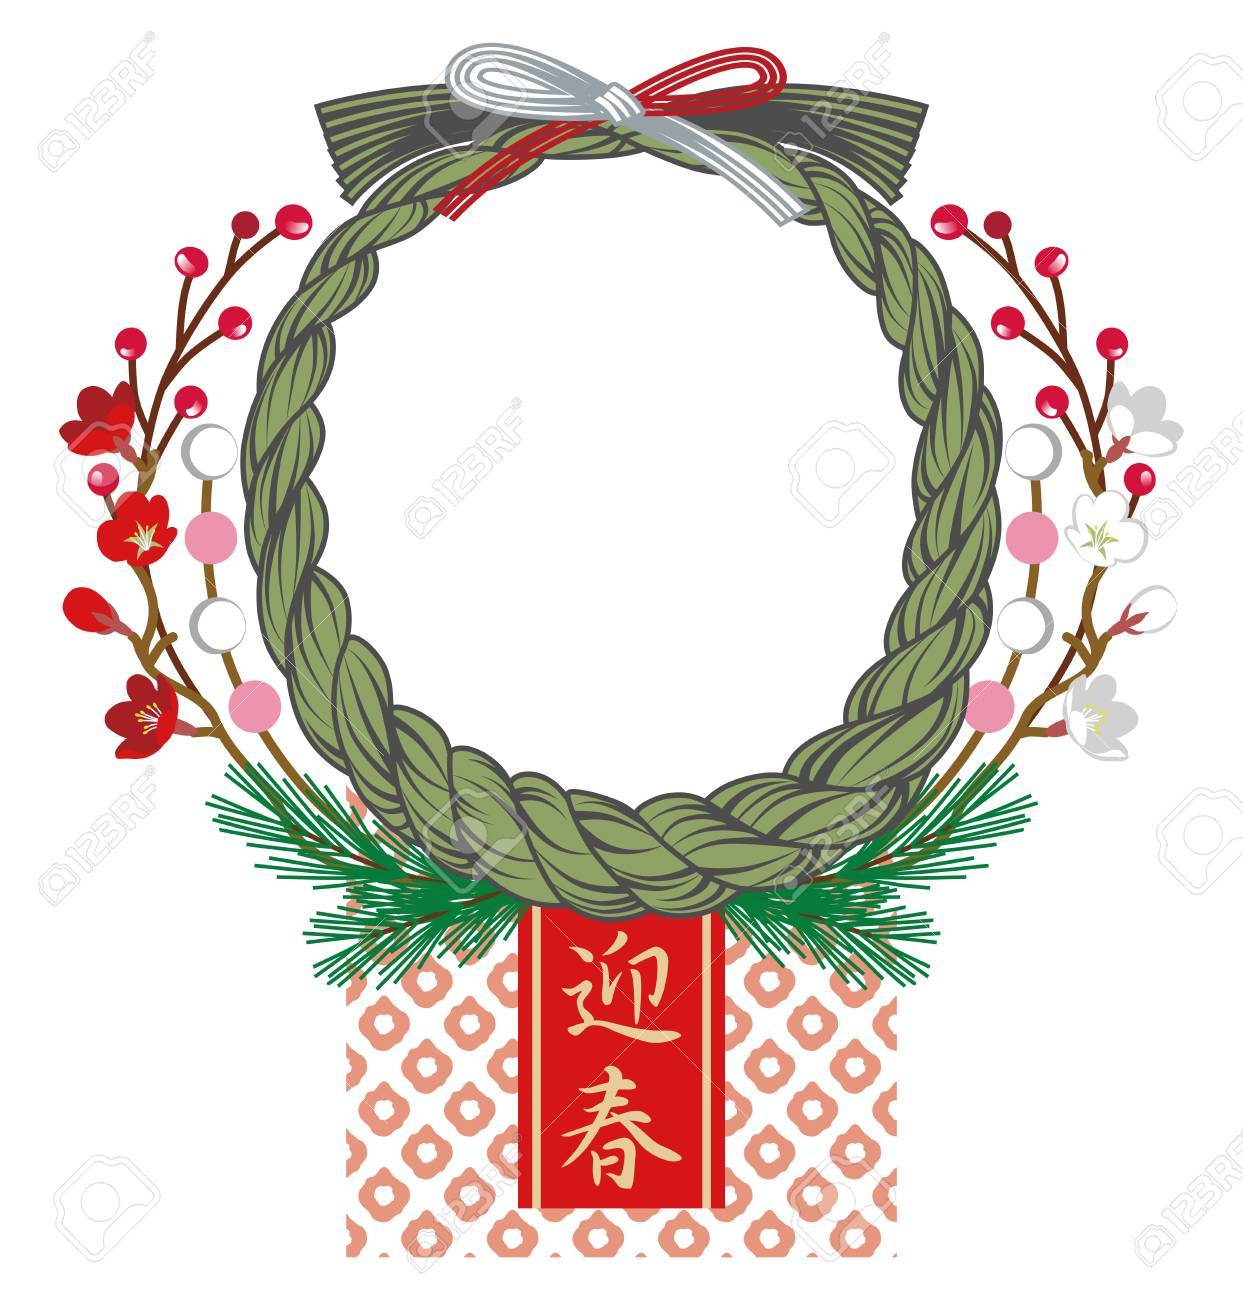 japanese new year wreath decoration royalty free cliparts, vectors